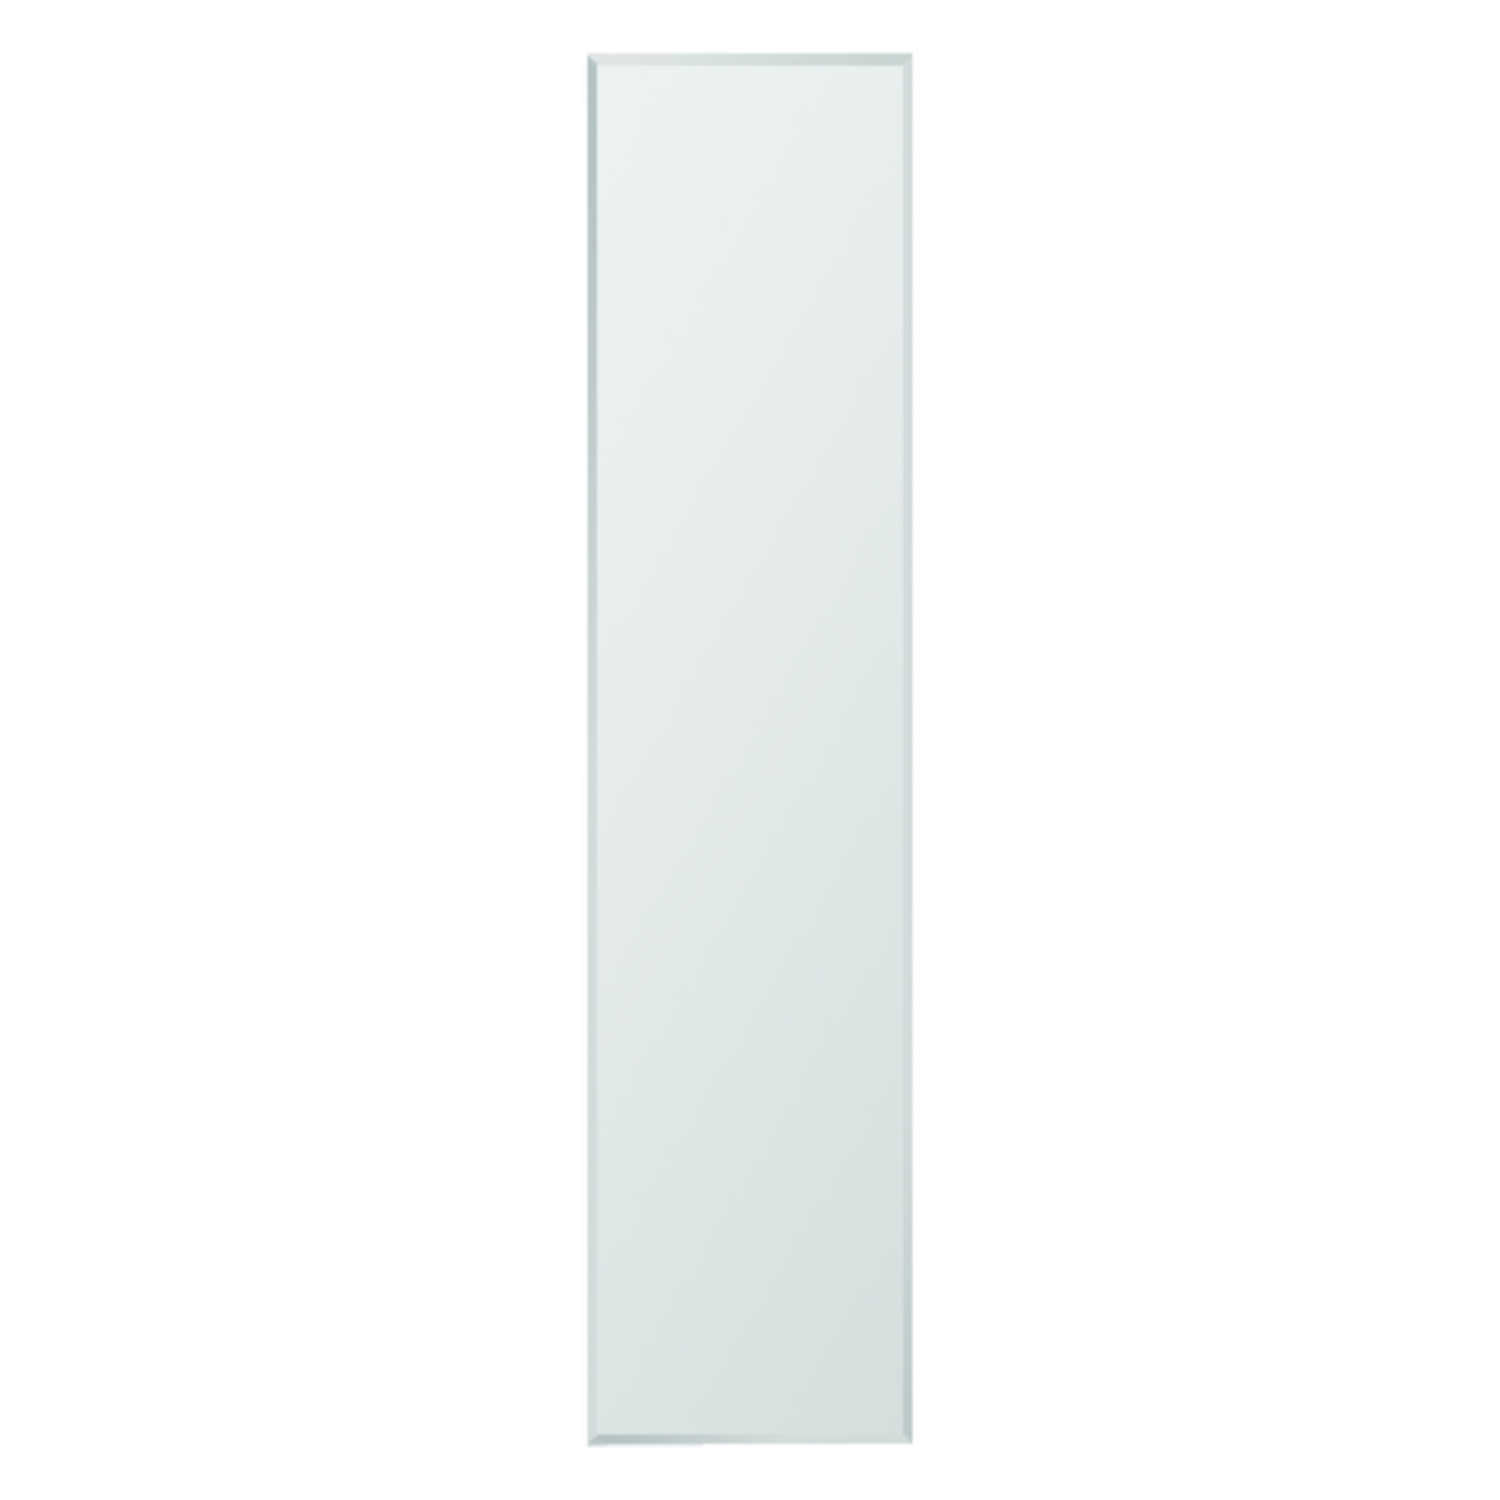 Erias  16 in. W x 60 in. H Full Length Door Mirror